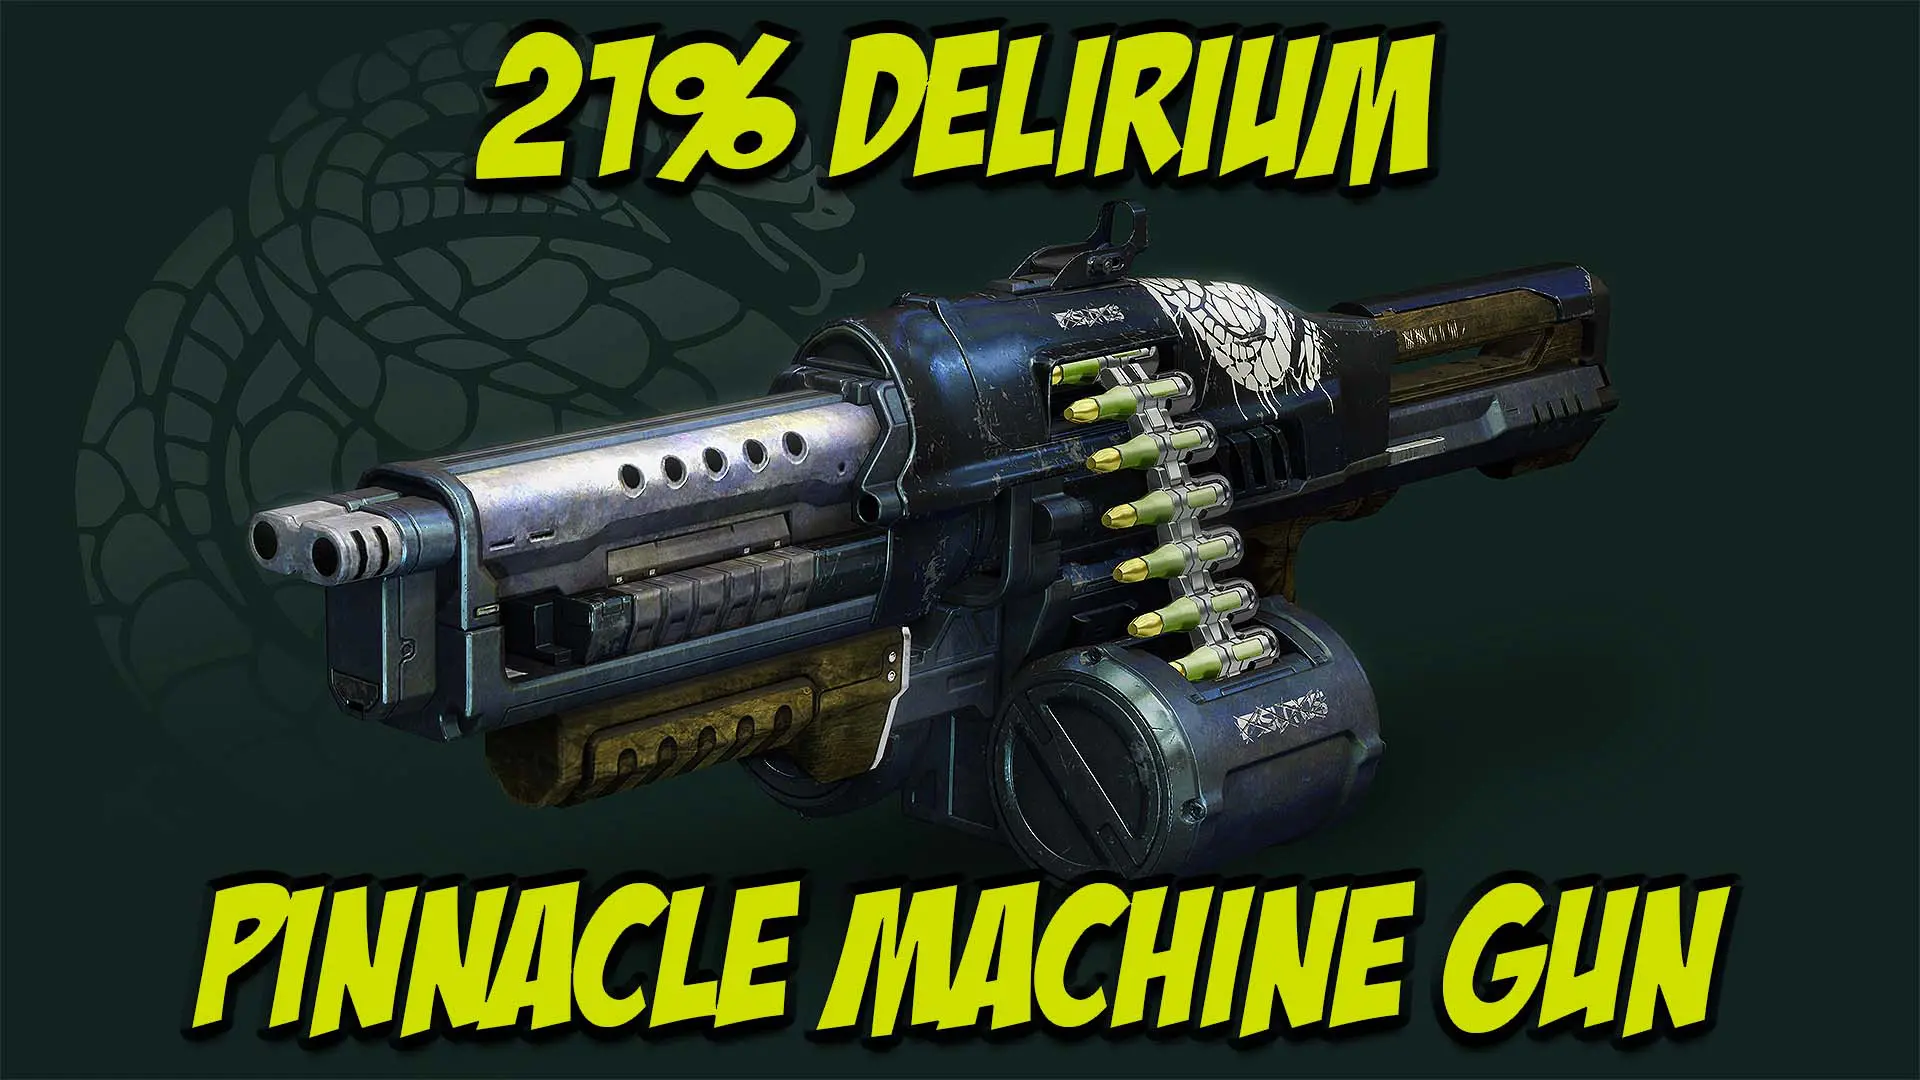 21% Delirium Pinnacle Heavy Machine Gun